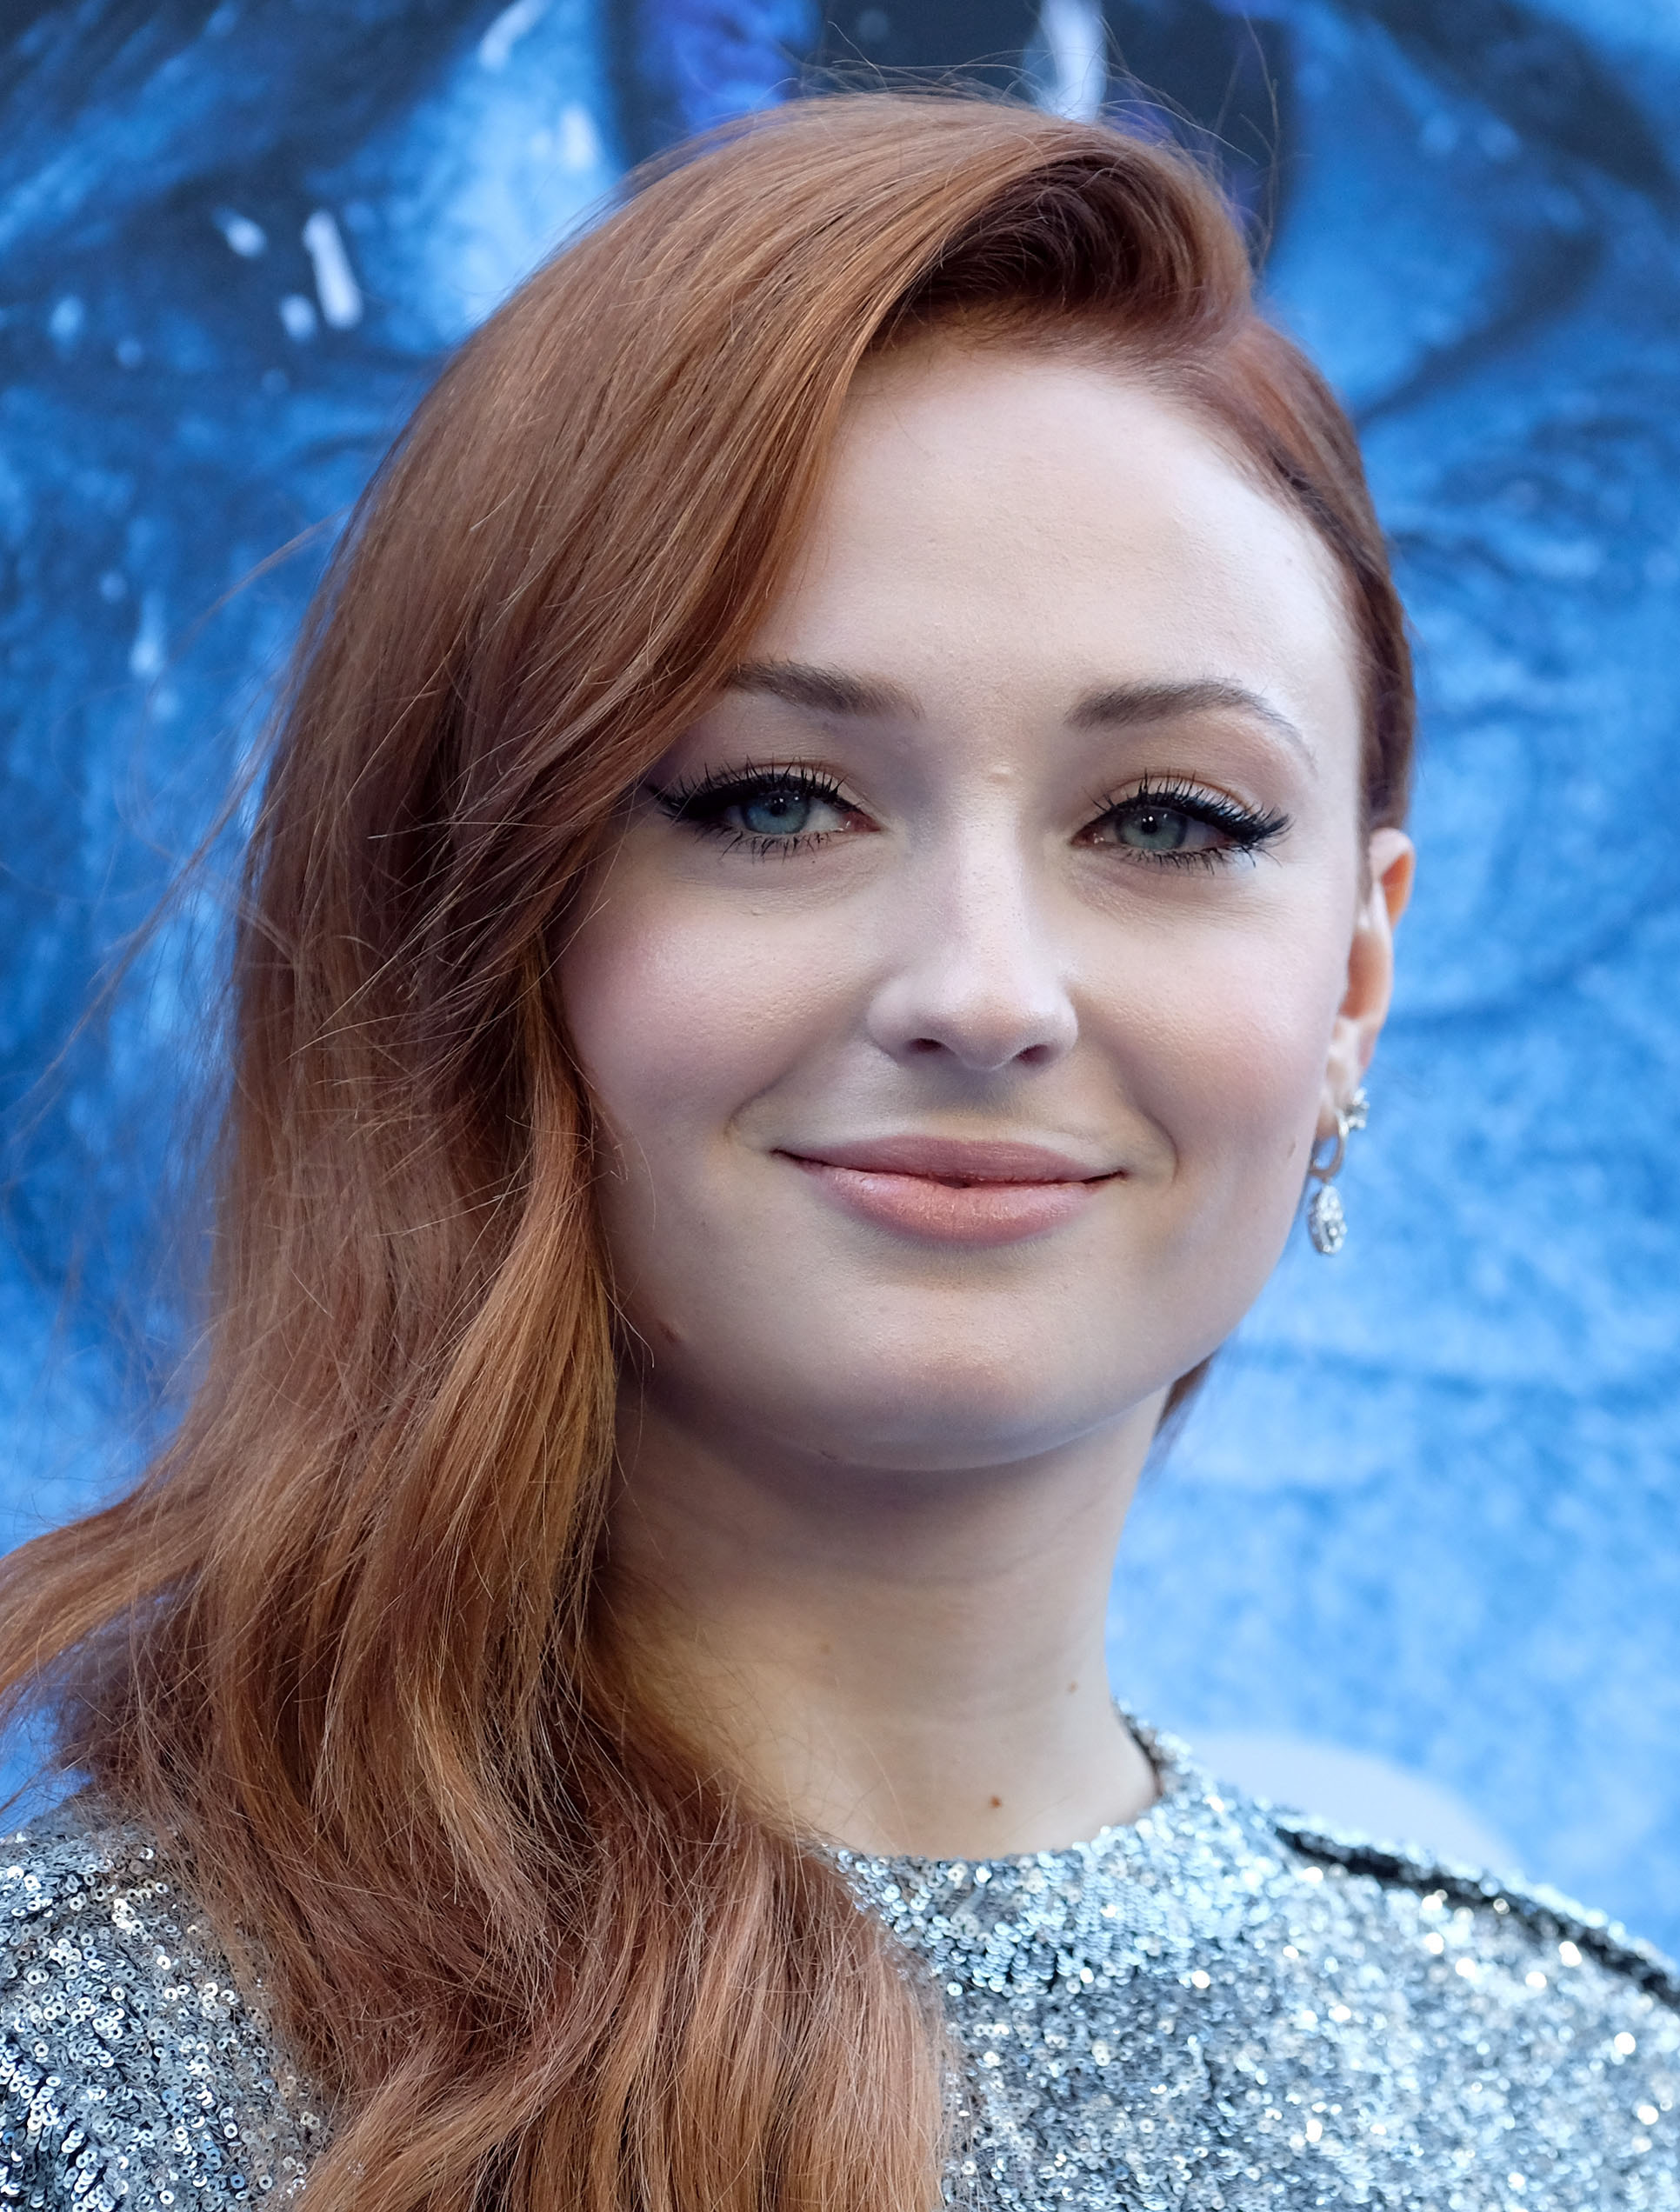 Sophie turner sa biographie allocin for Biographie de afida turner